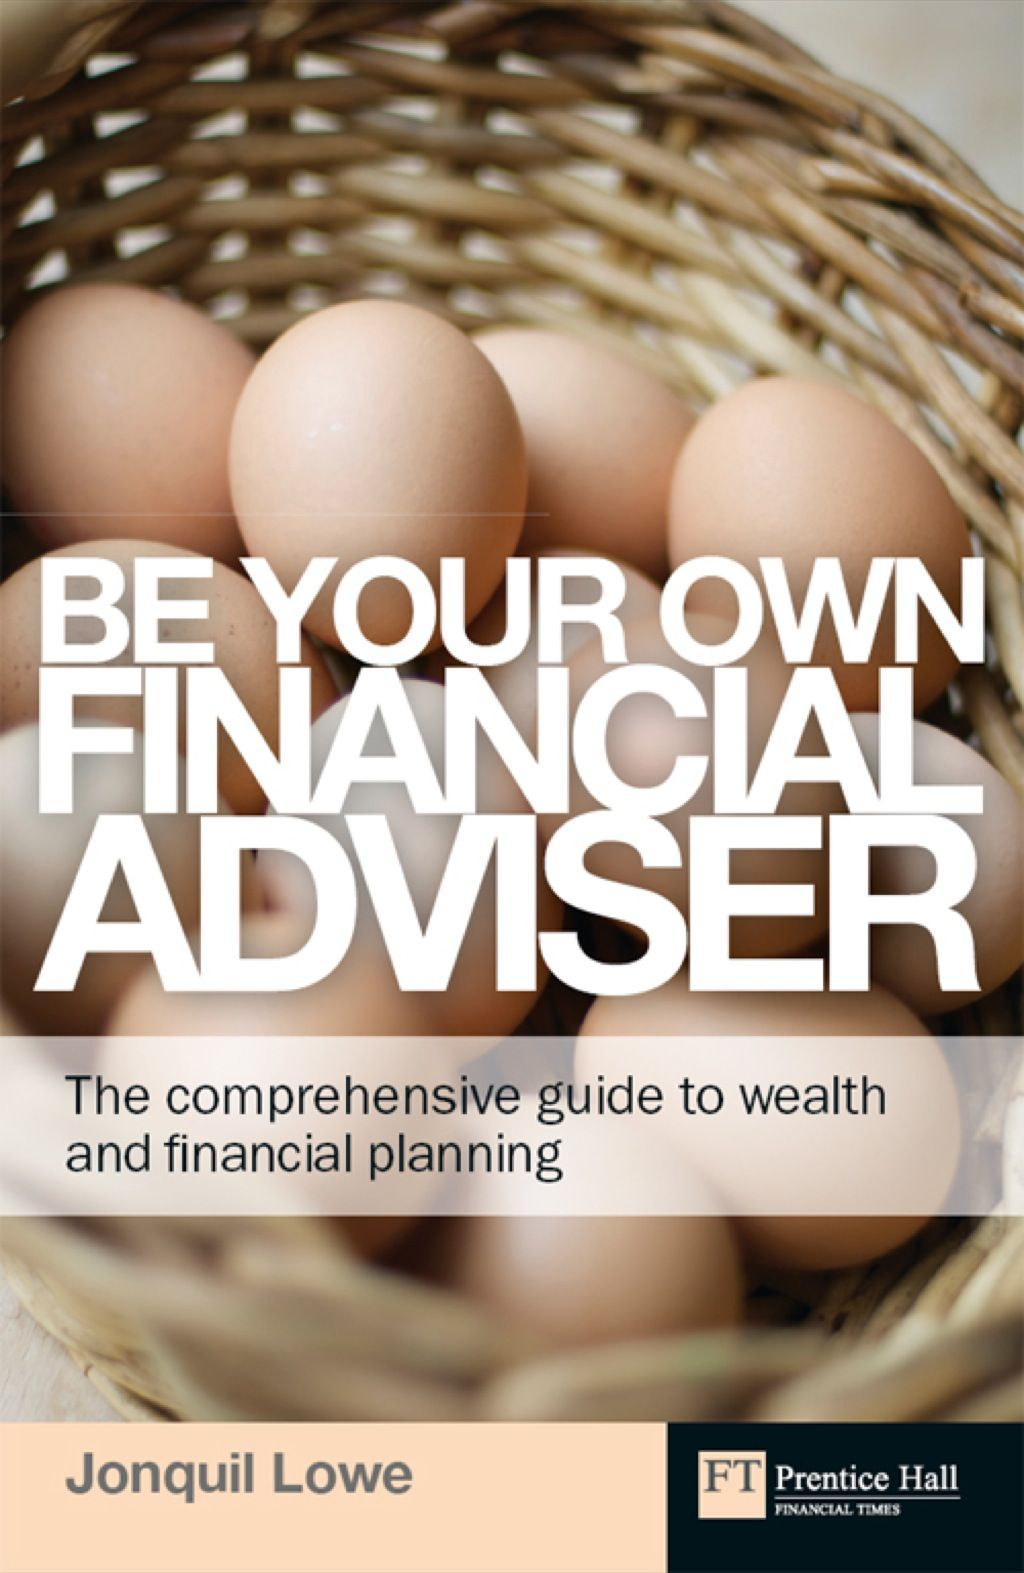 Be Your Own Financial Adviser Epub 1st Edition Ebook Rental In 2021 Financial Advisors Financial Planning Financial